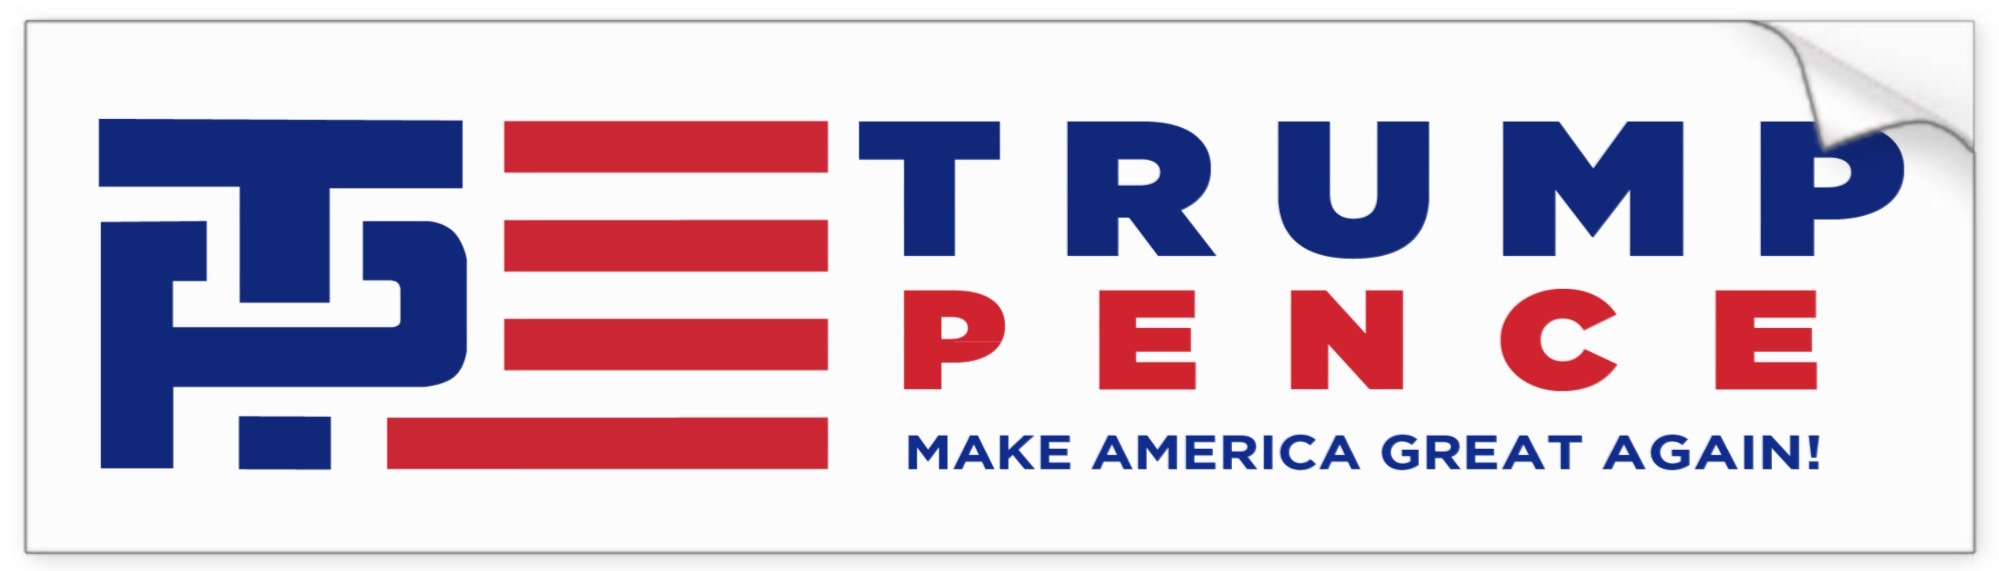 Donald Trump Mike Pence 2016 Presidential Campaign Bumper Stickers